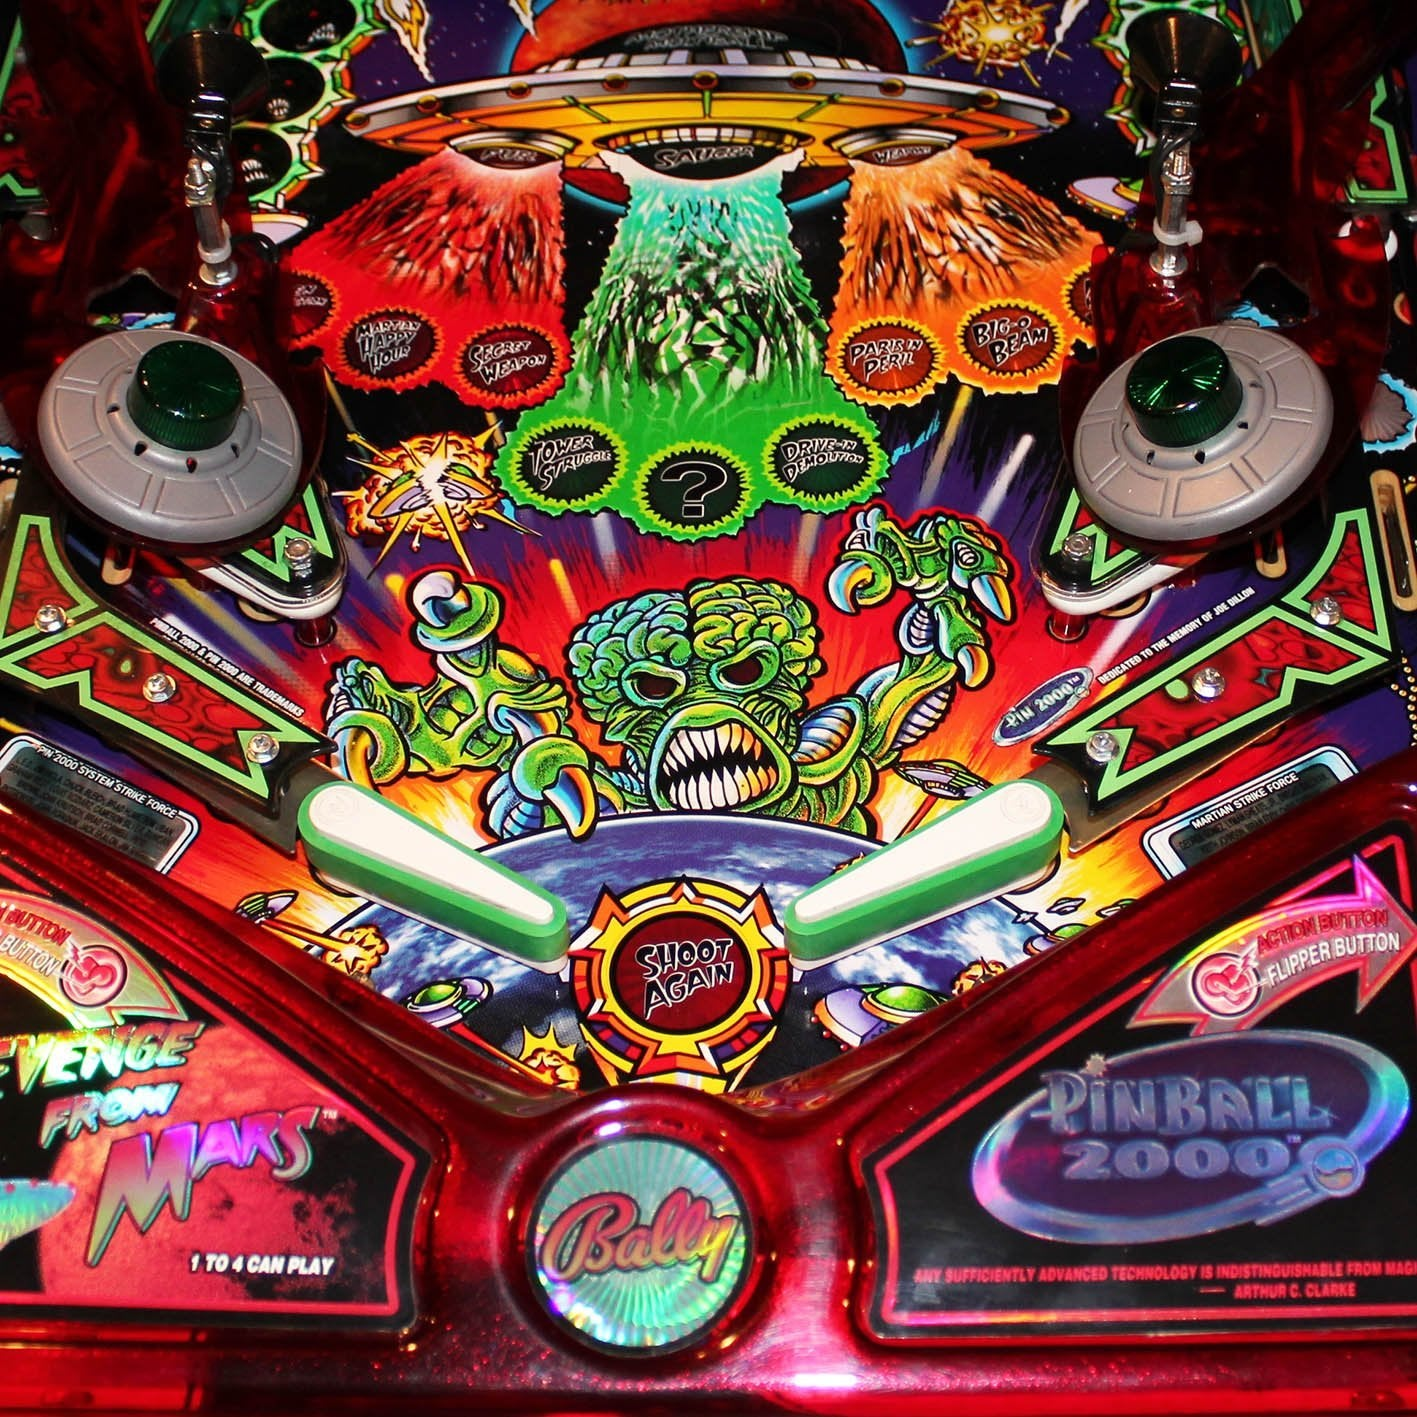 Revenge From Mars Pinball Machine 'Coming Soon'